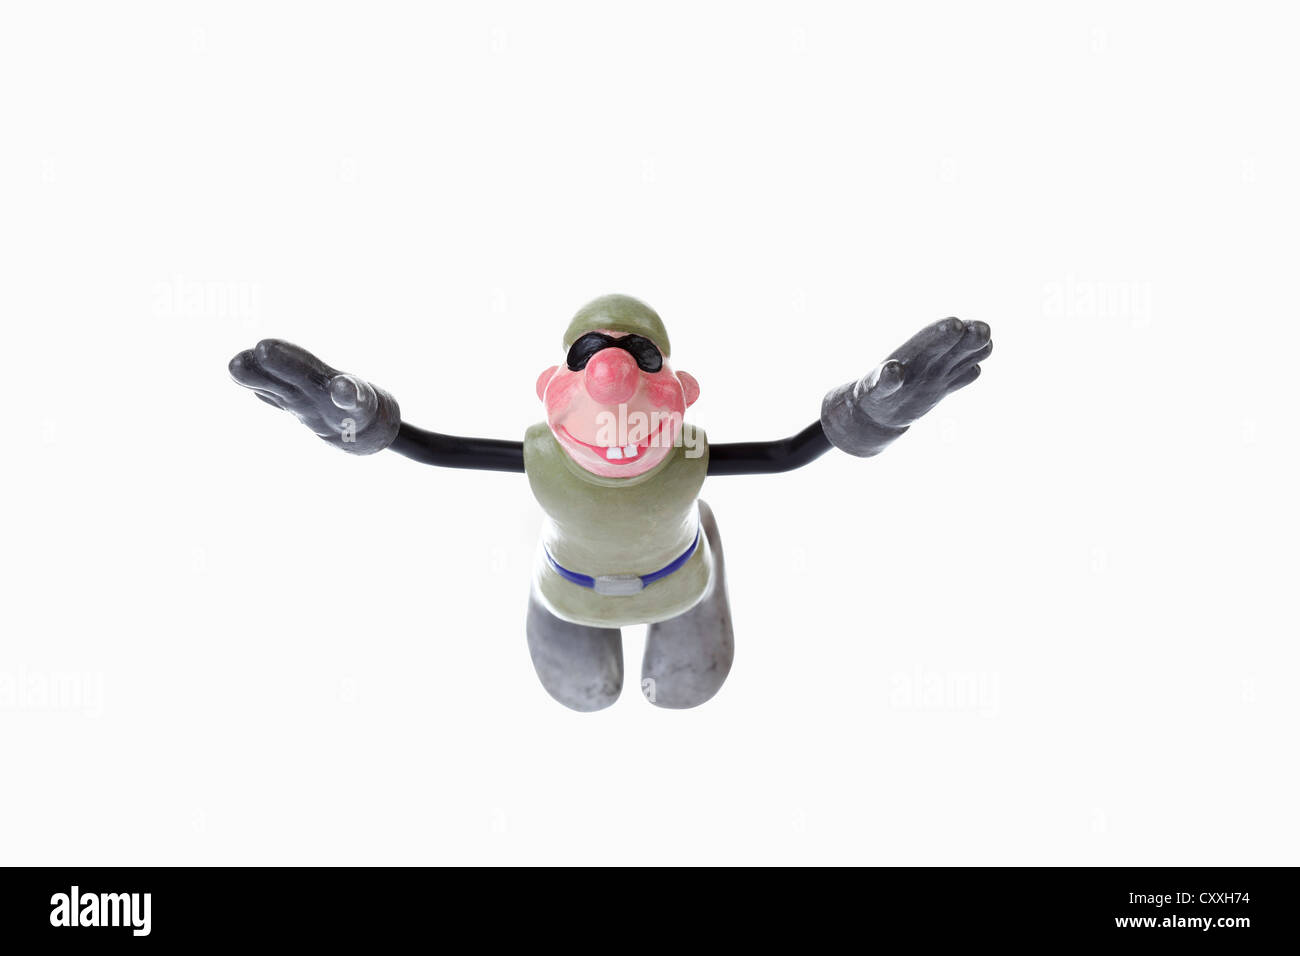 Cartoon character, basejumper in updraft - Stock Image